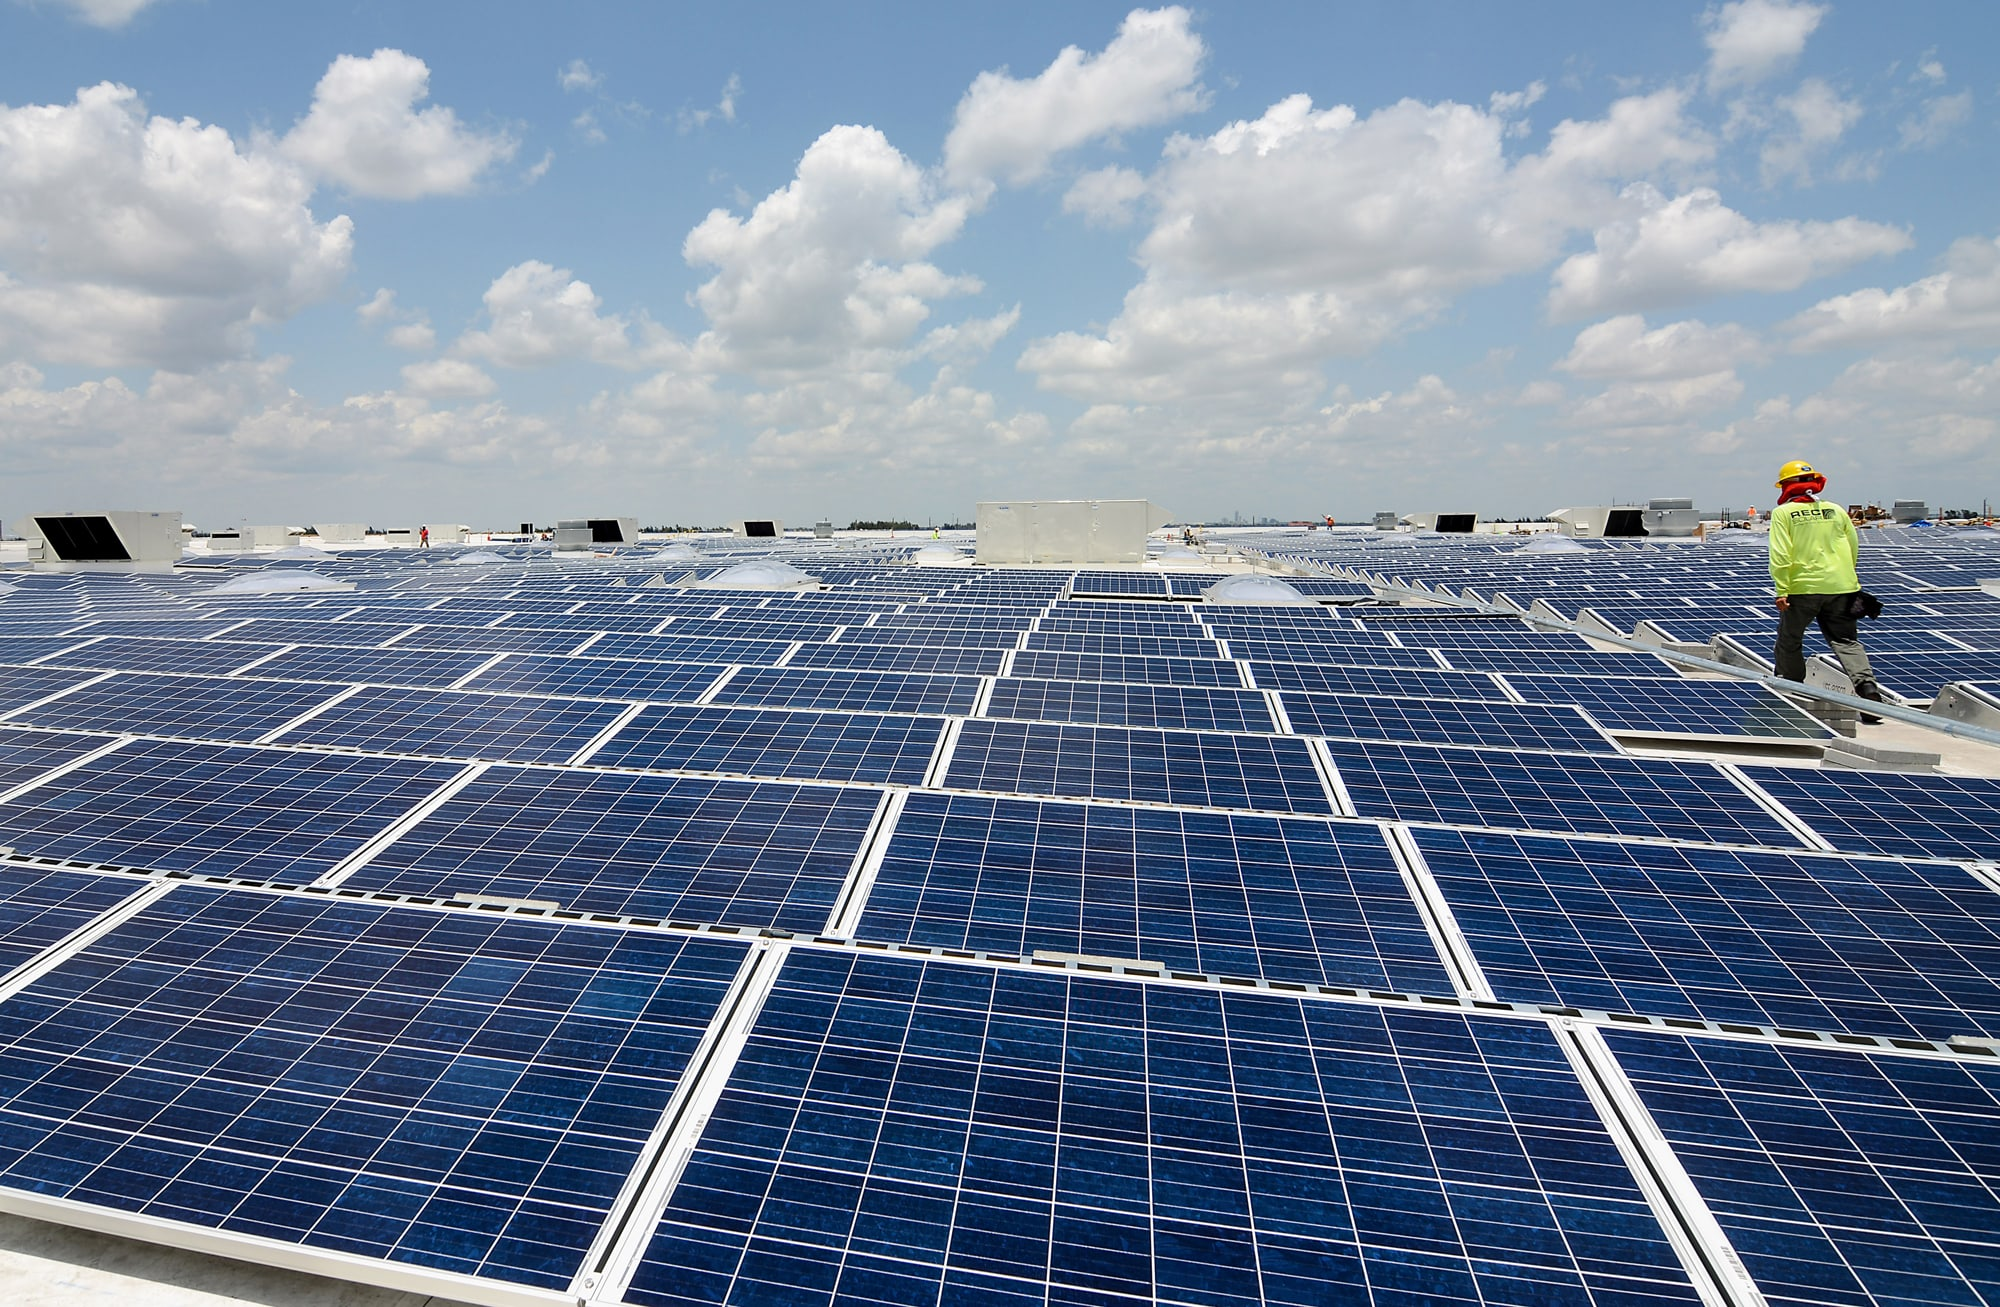 A contractor walks past solar panels on the roof of a new IKEA store in Miami.